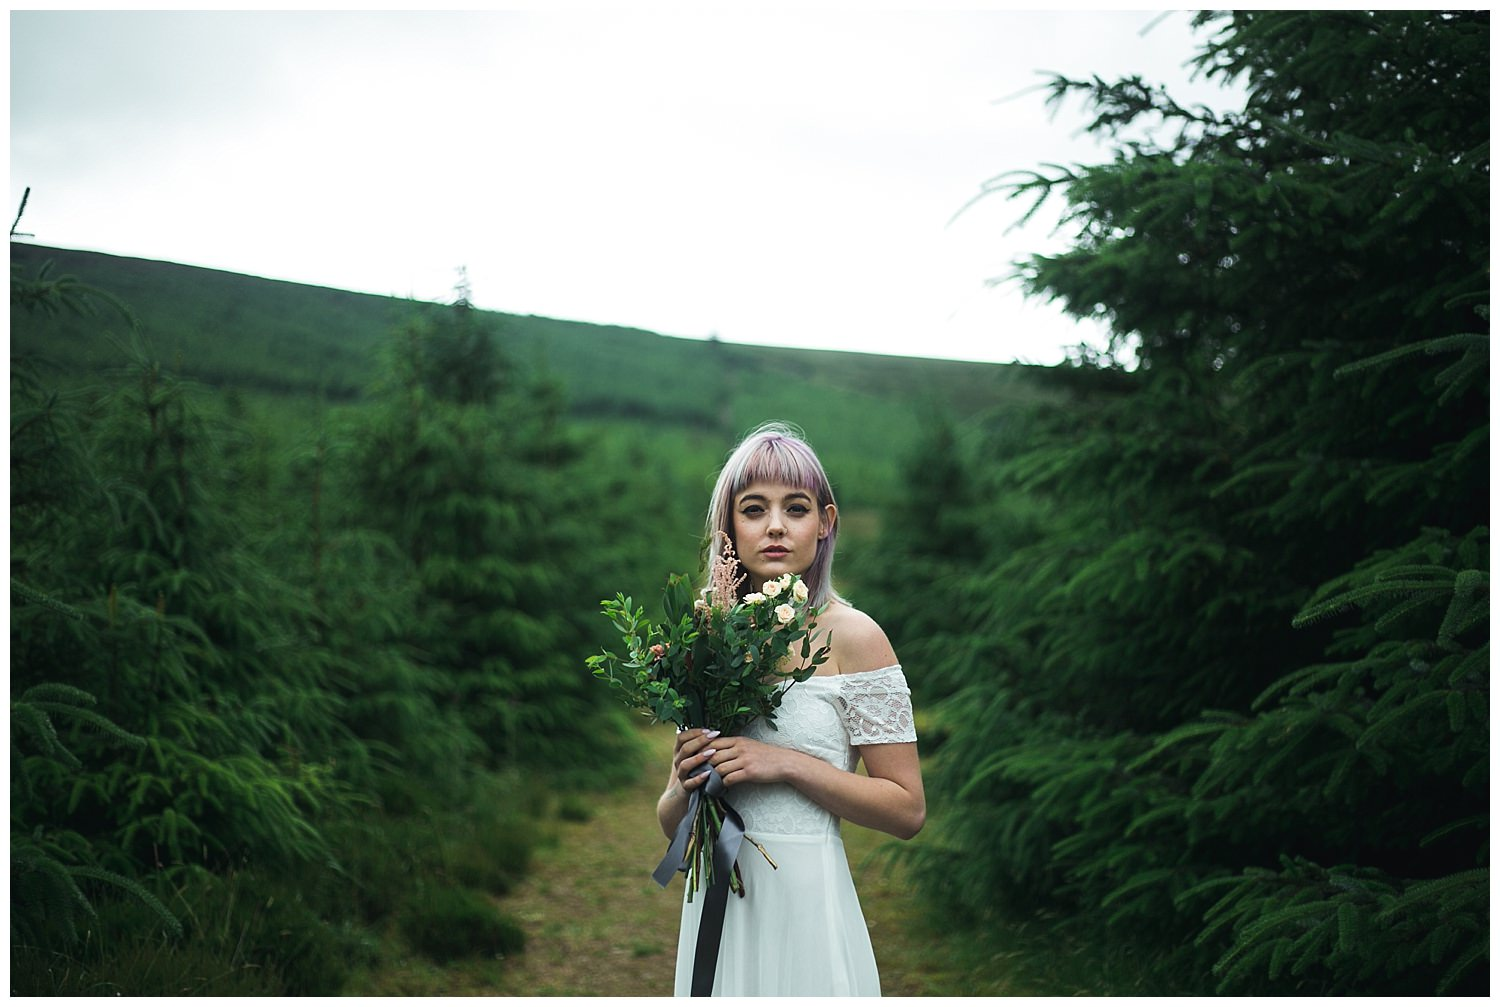 Styled wedding shoot amongst green pine trees in Kippure Wicklow